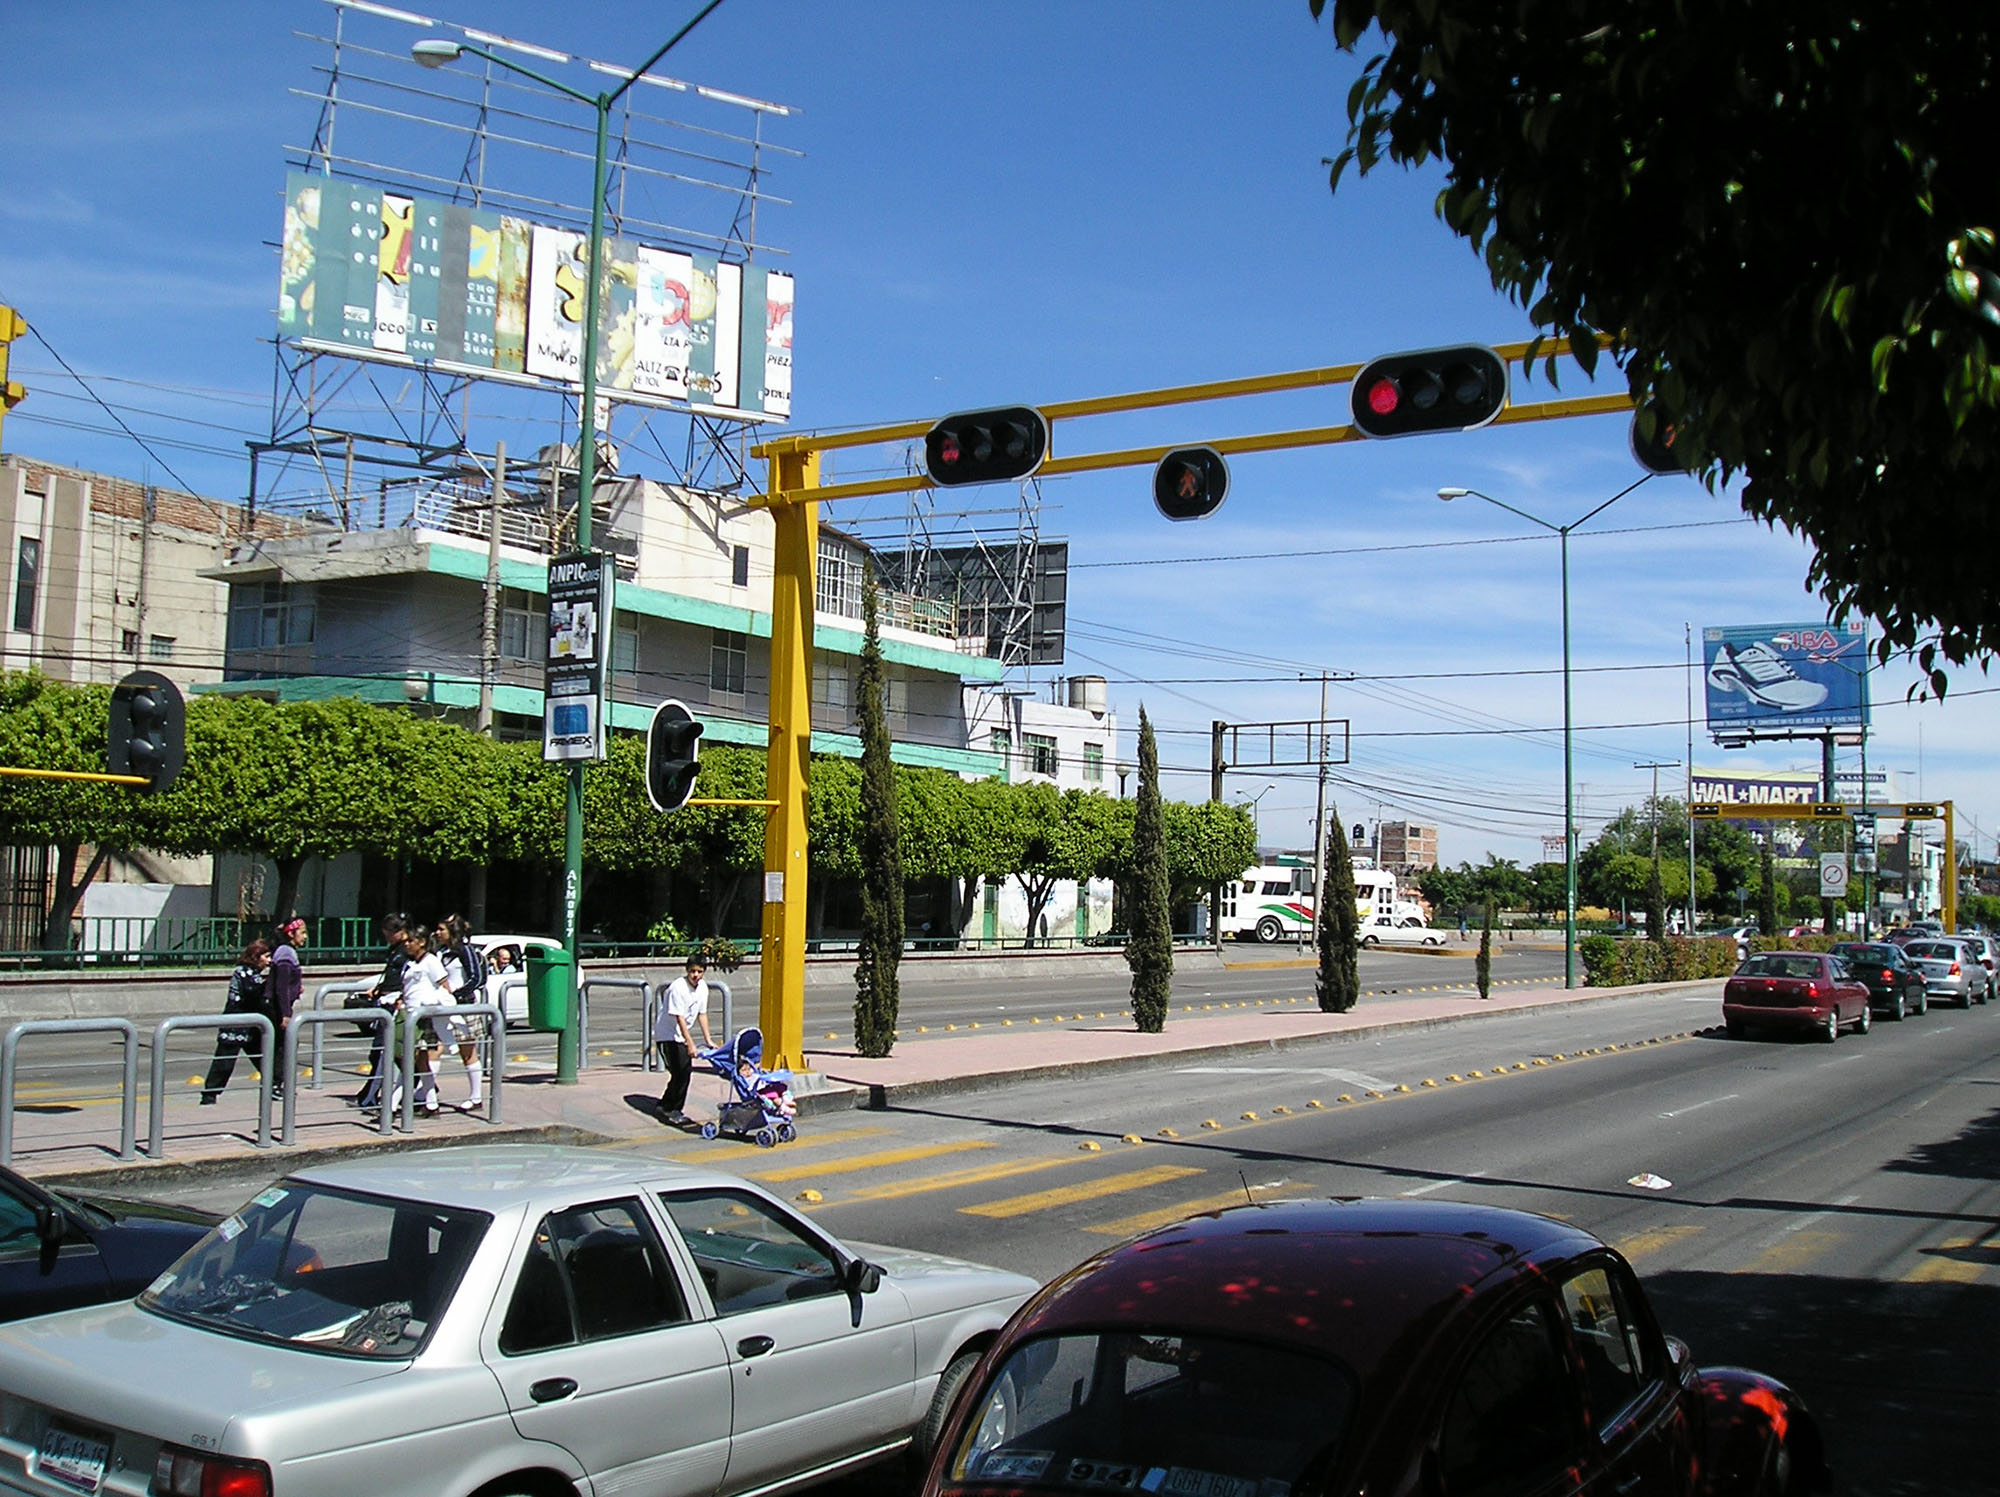 Fig. 29.2 Second component of pedestrian access to a BRT system: crossing the corridor to reach the station (León, Mexico).